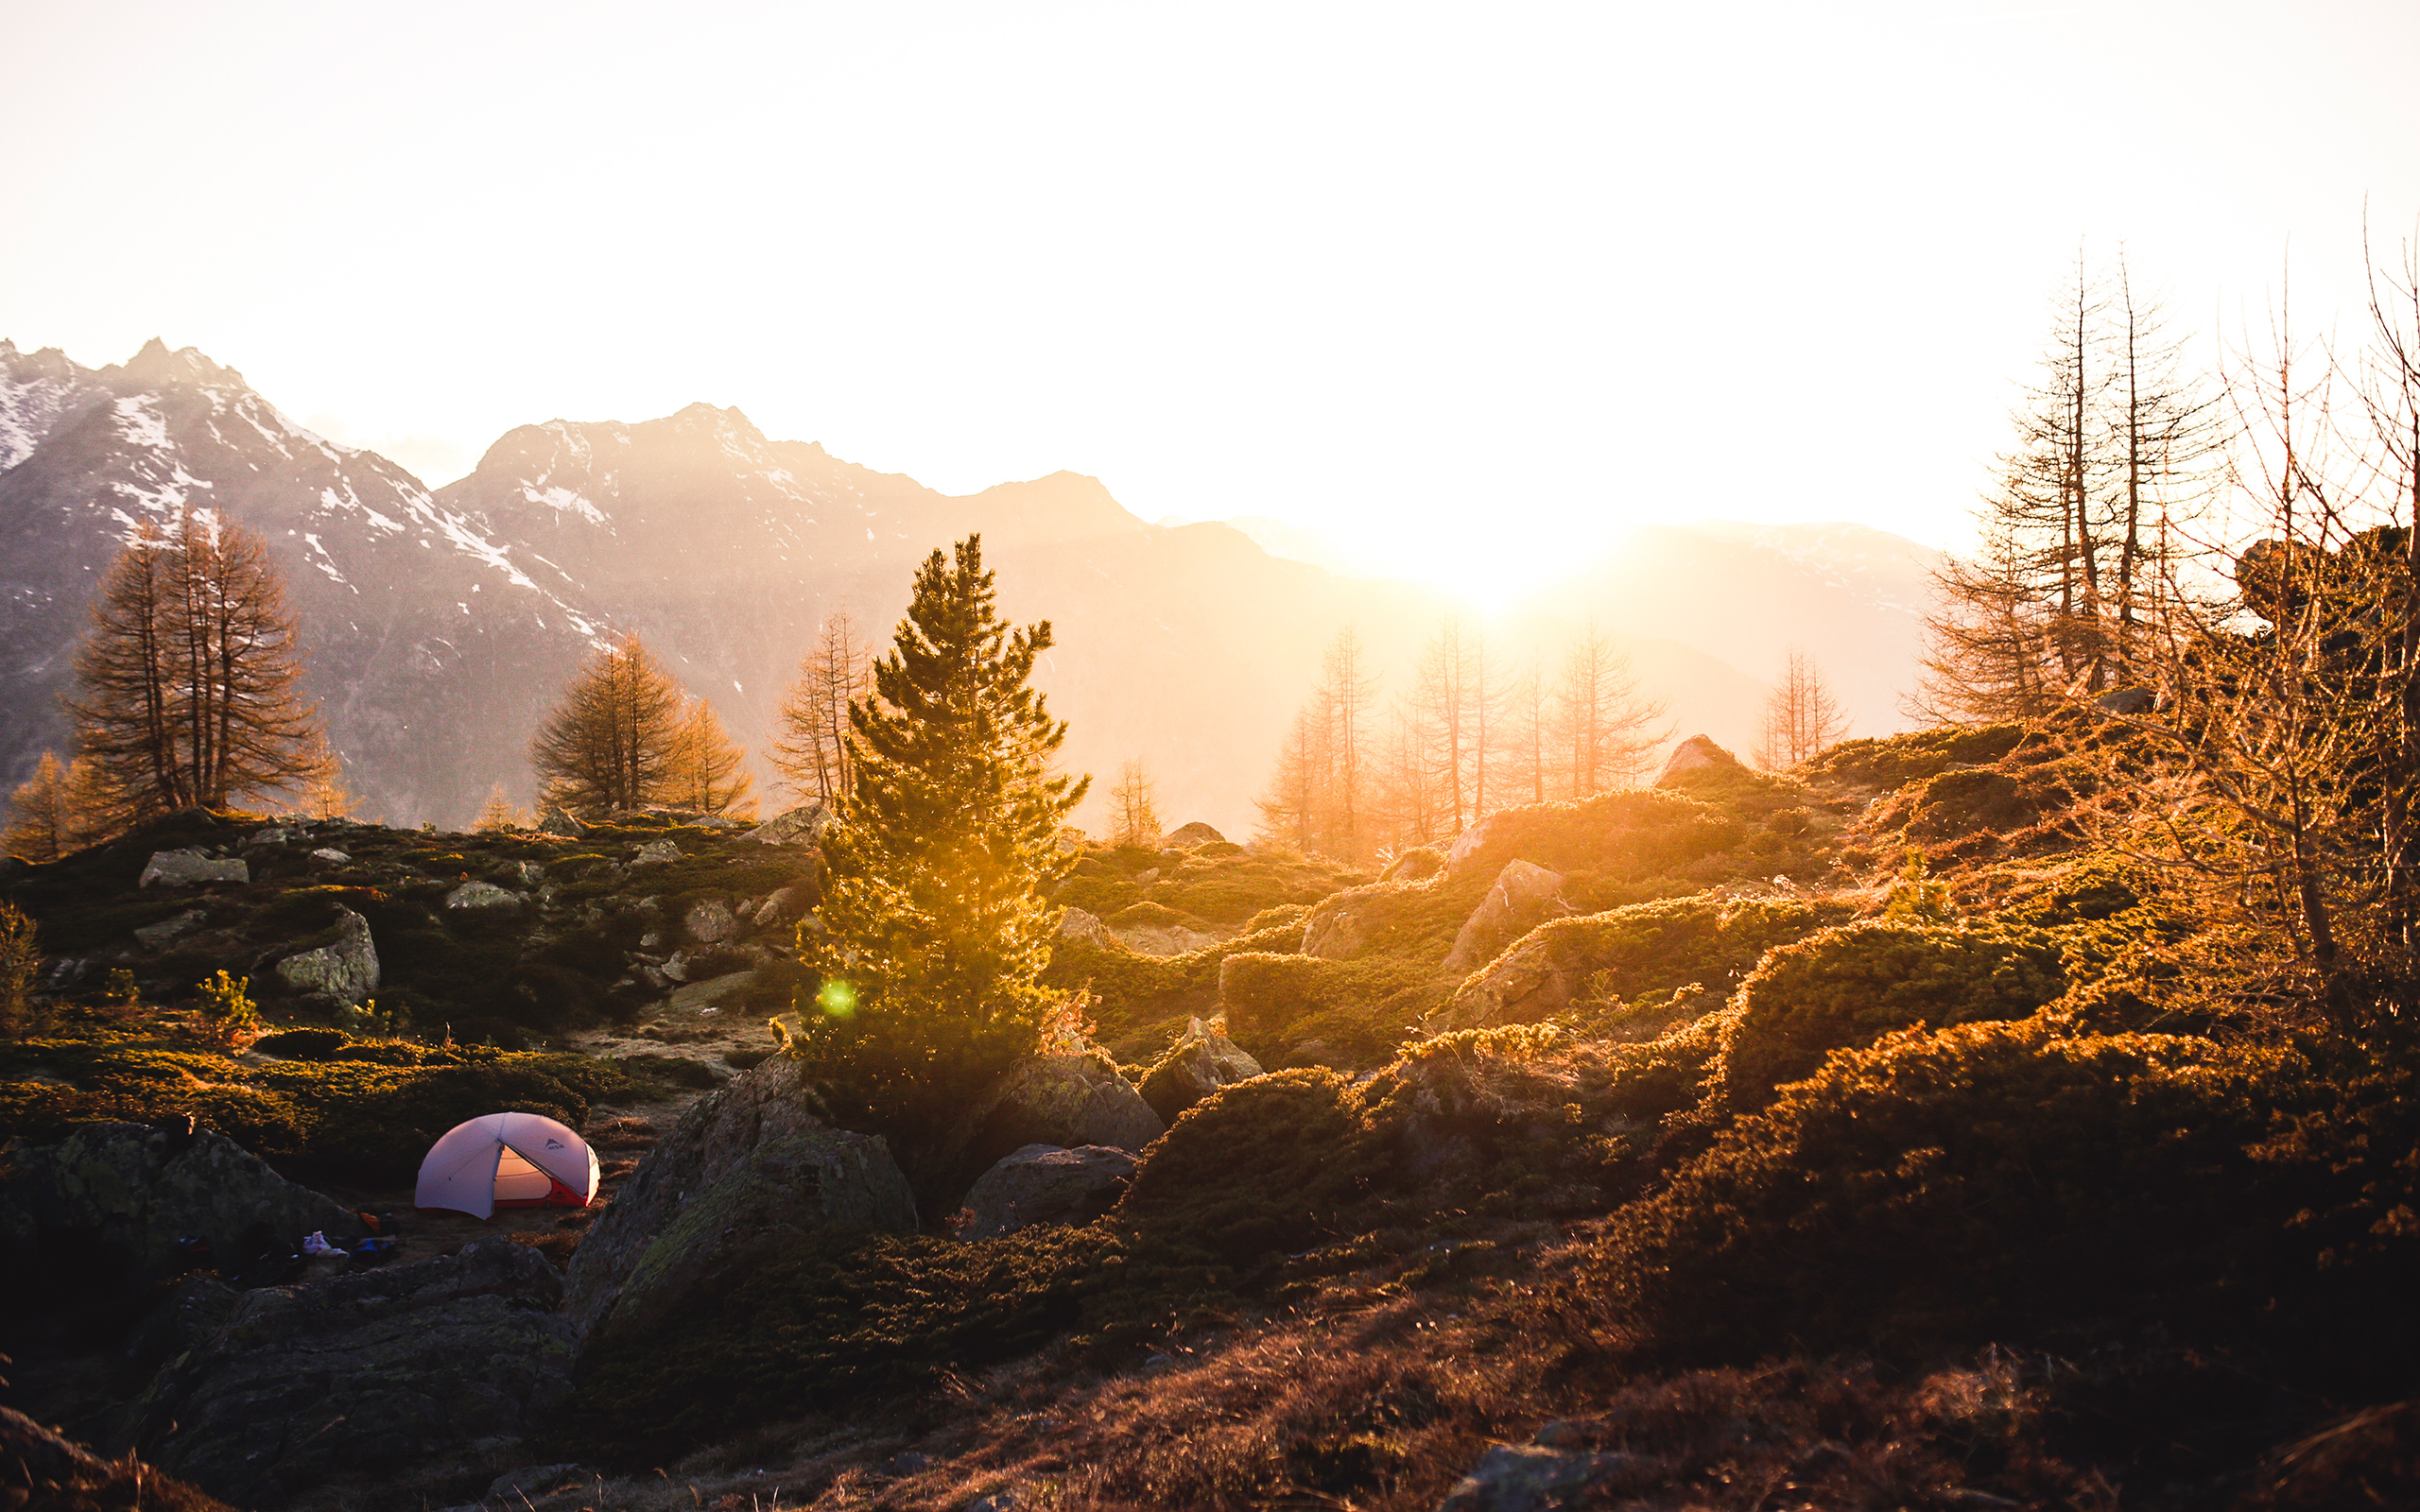 Daily Wallpaper Camping In Swiss Mountains I Like To